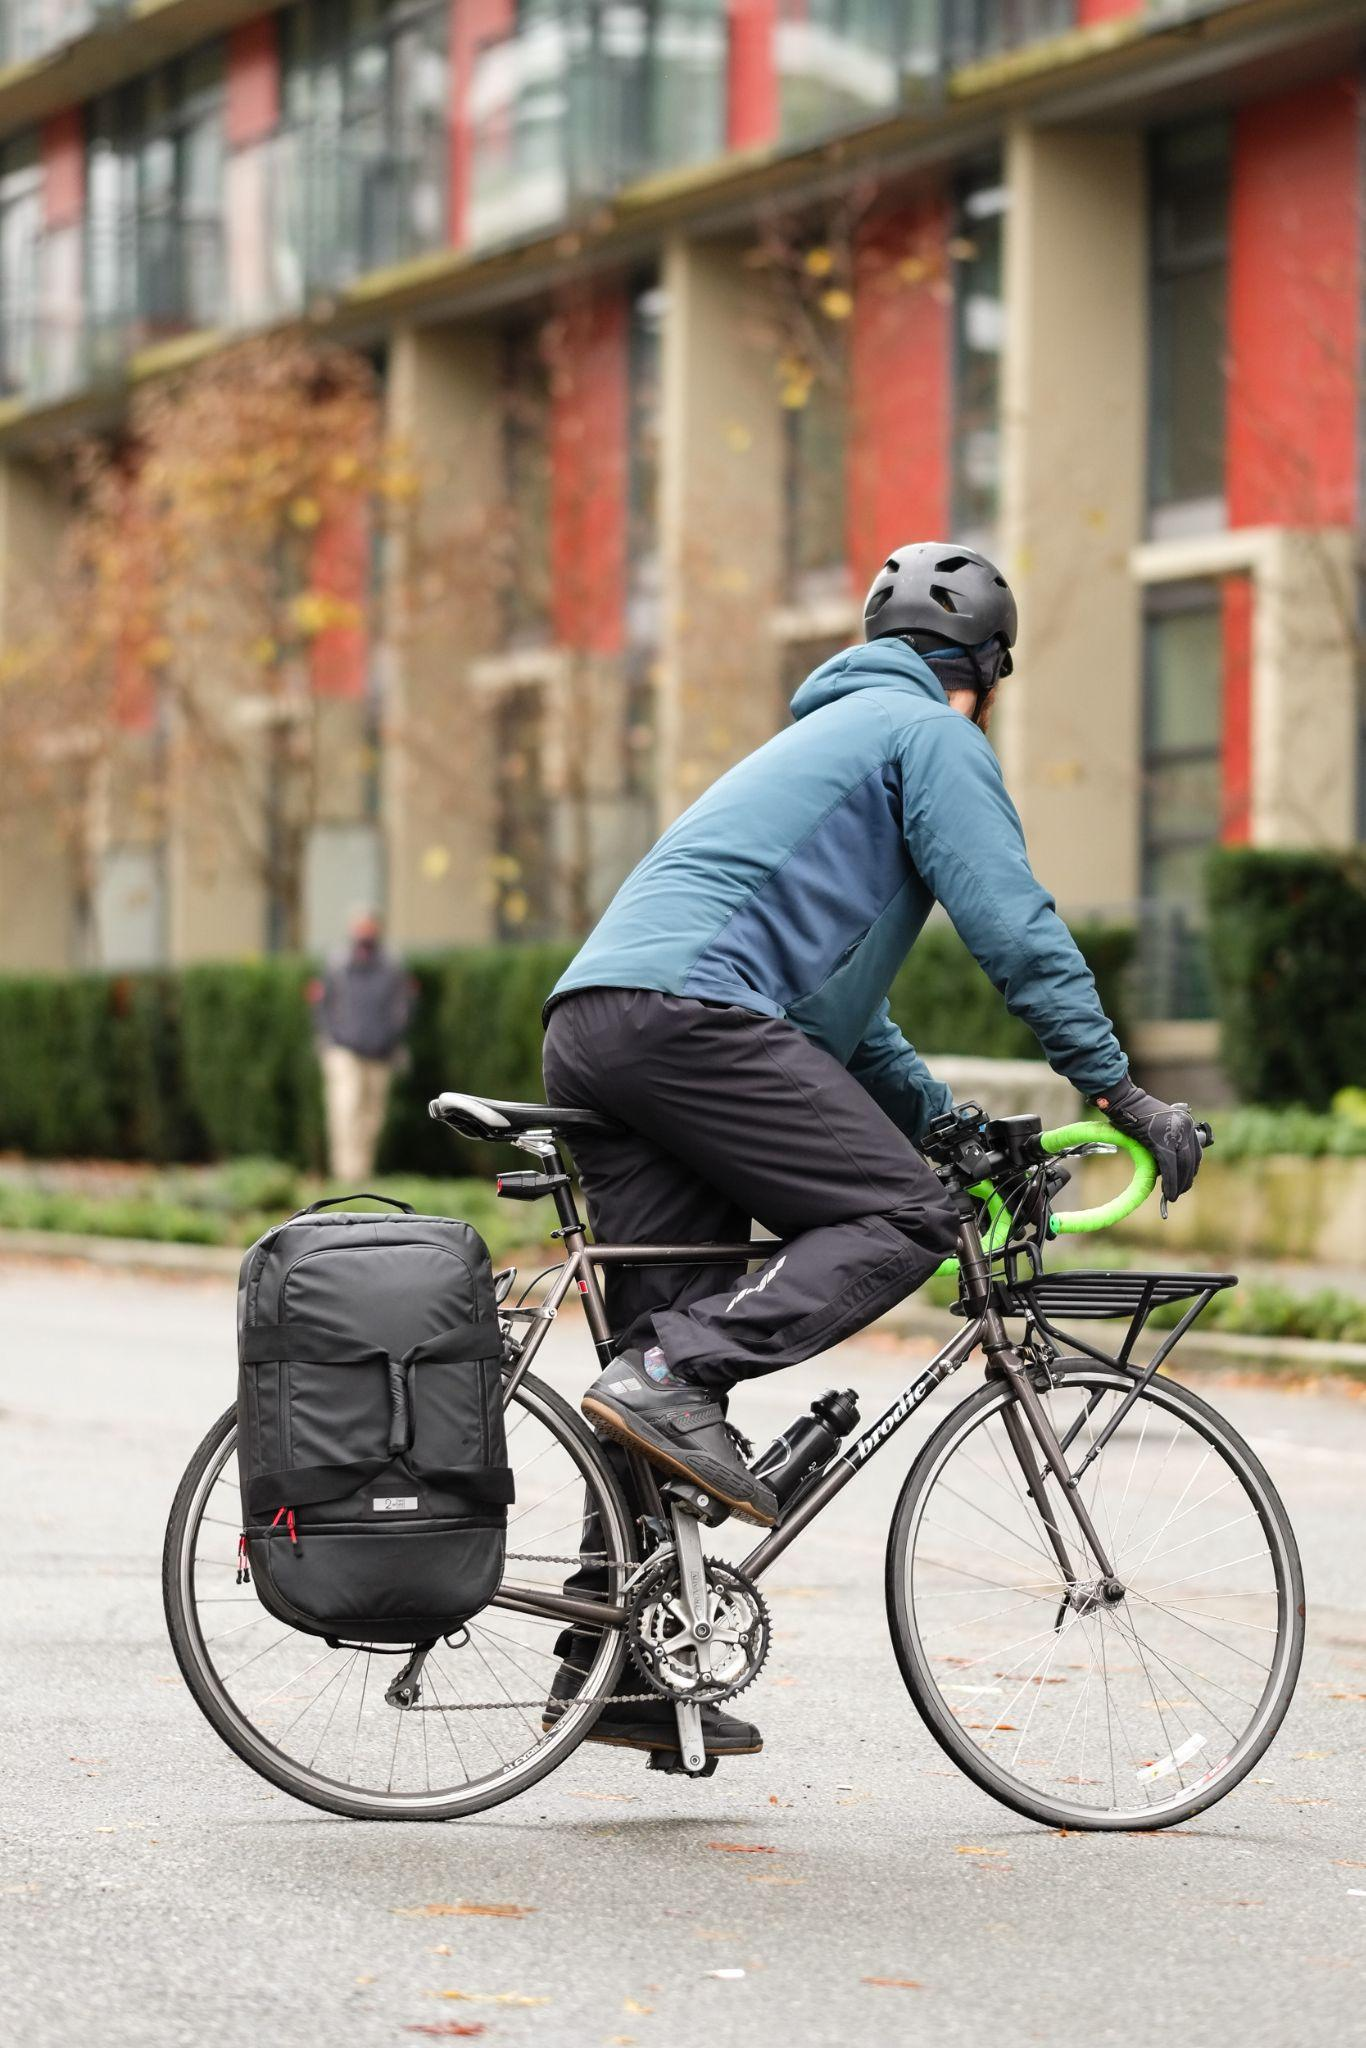 commuting by bike in the city